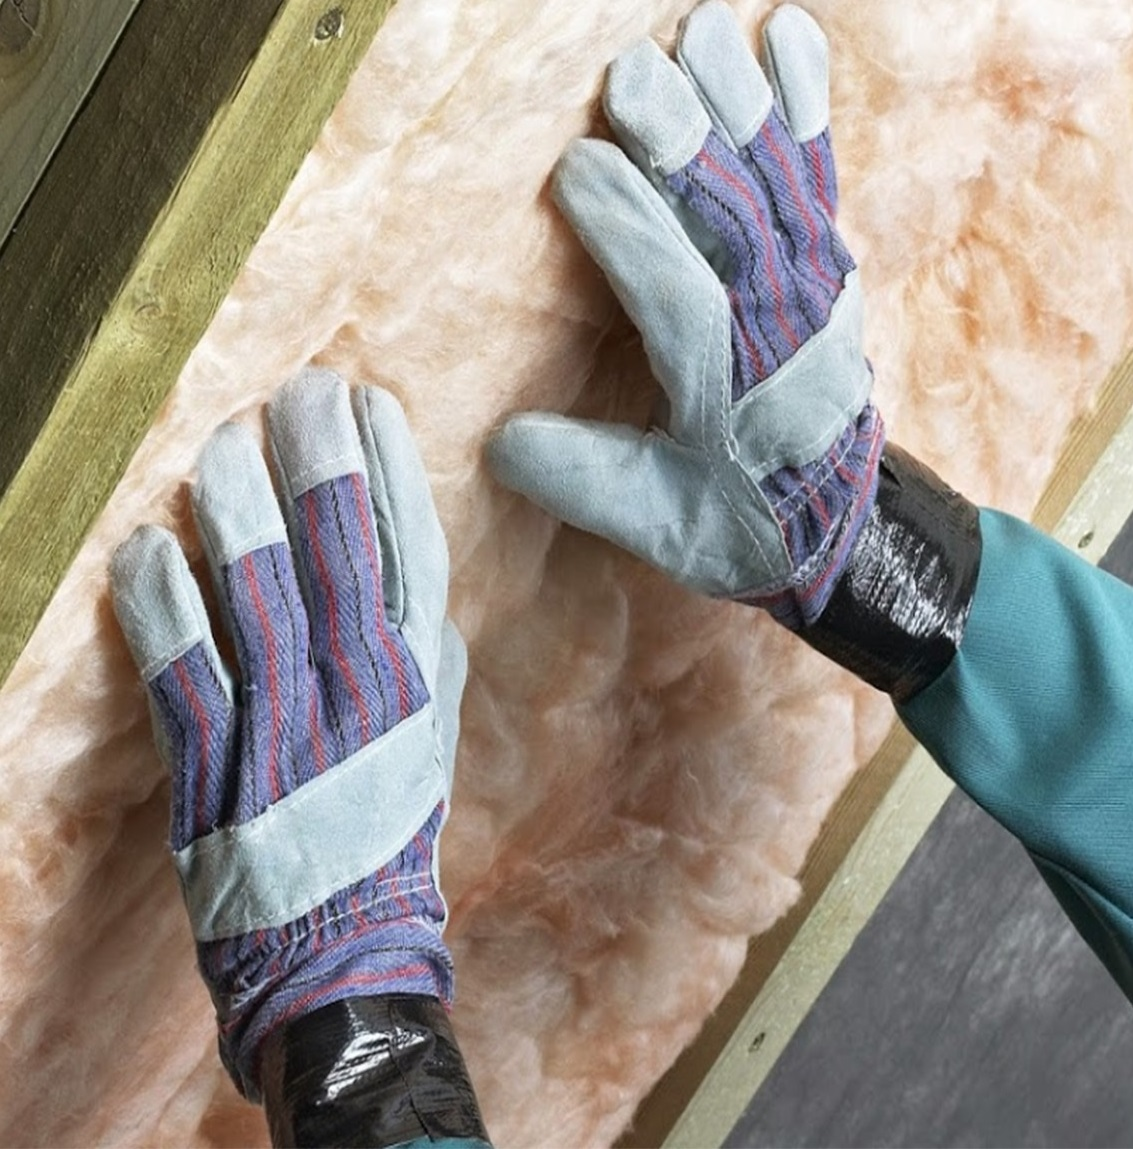 Preparation for insulation is necessary for installation